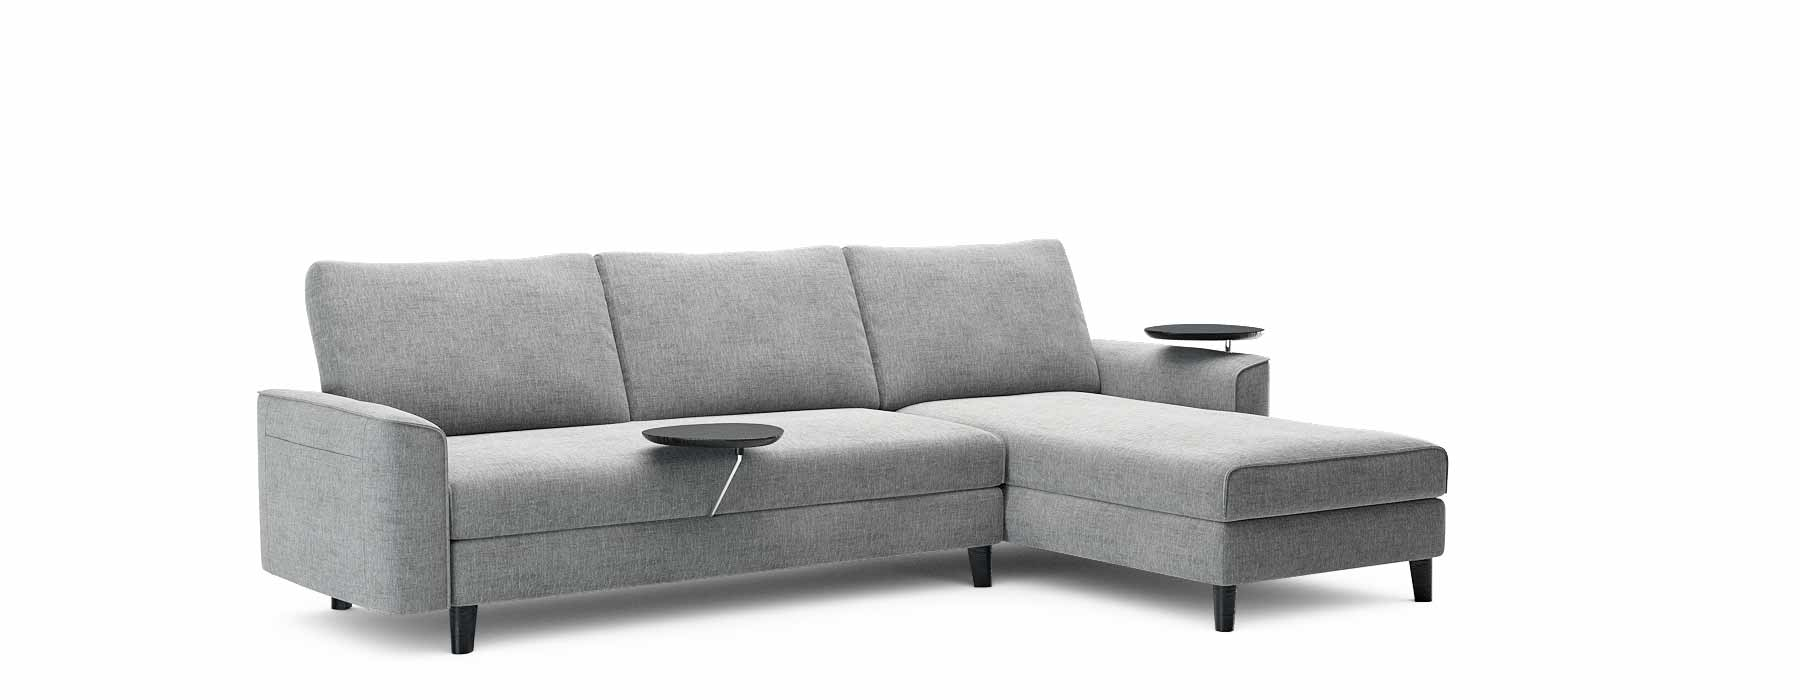 Delta Iii Flexible Modular Sofa Lounge Couch King Living